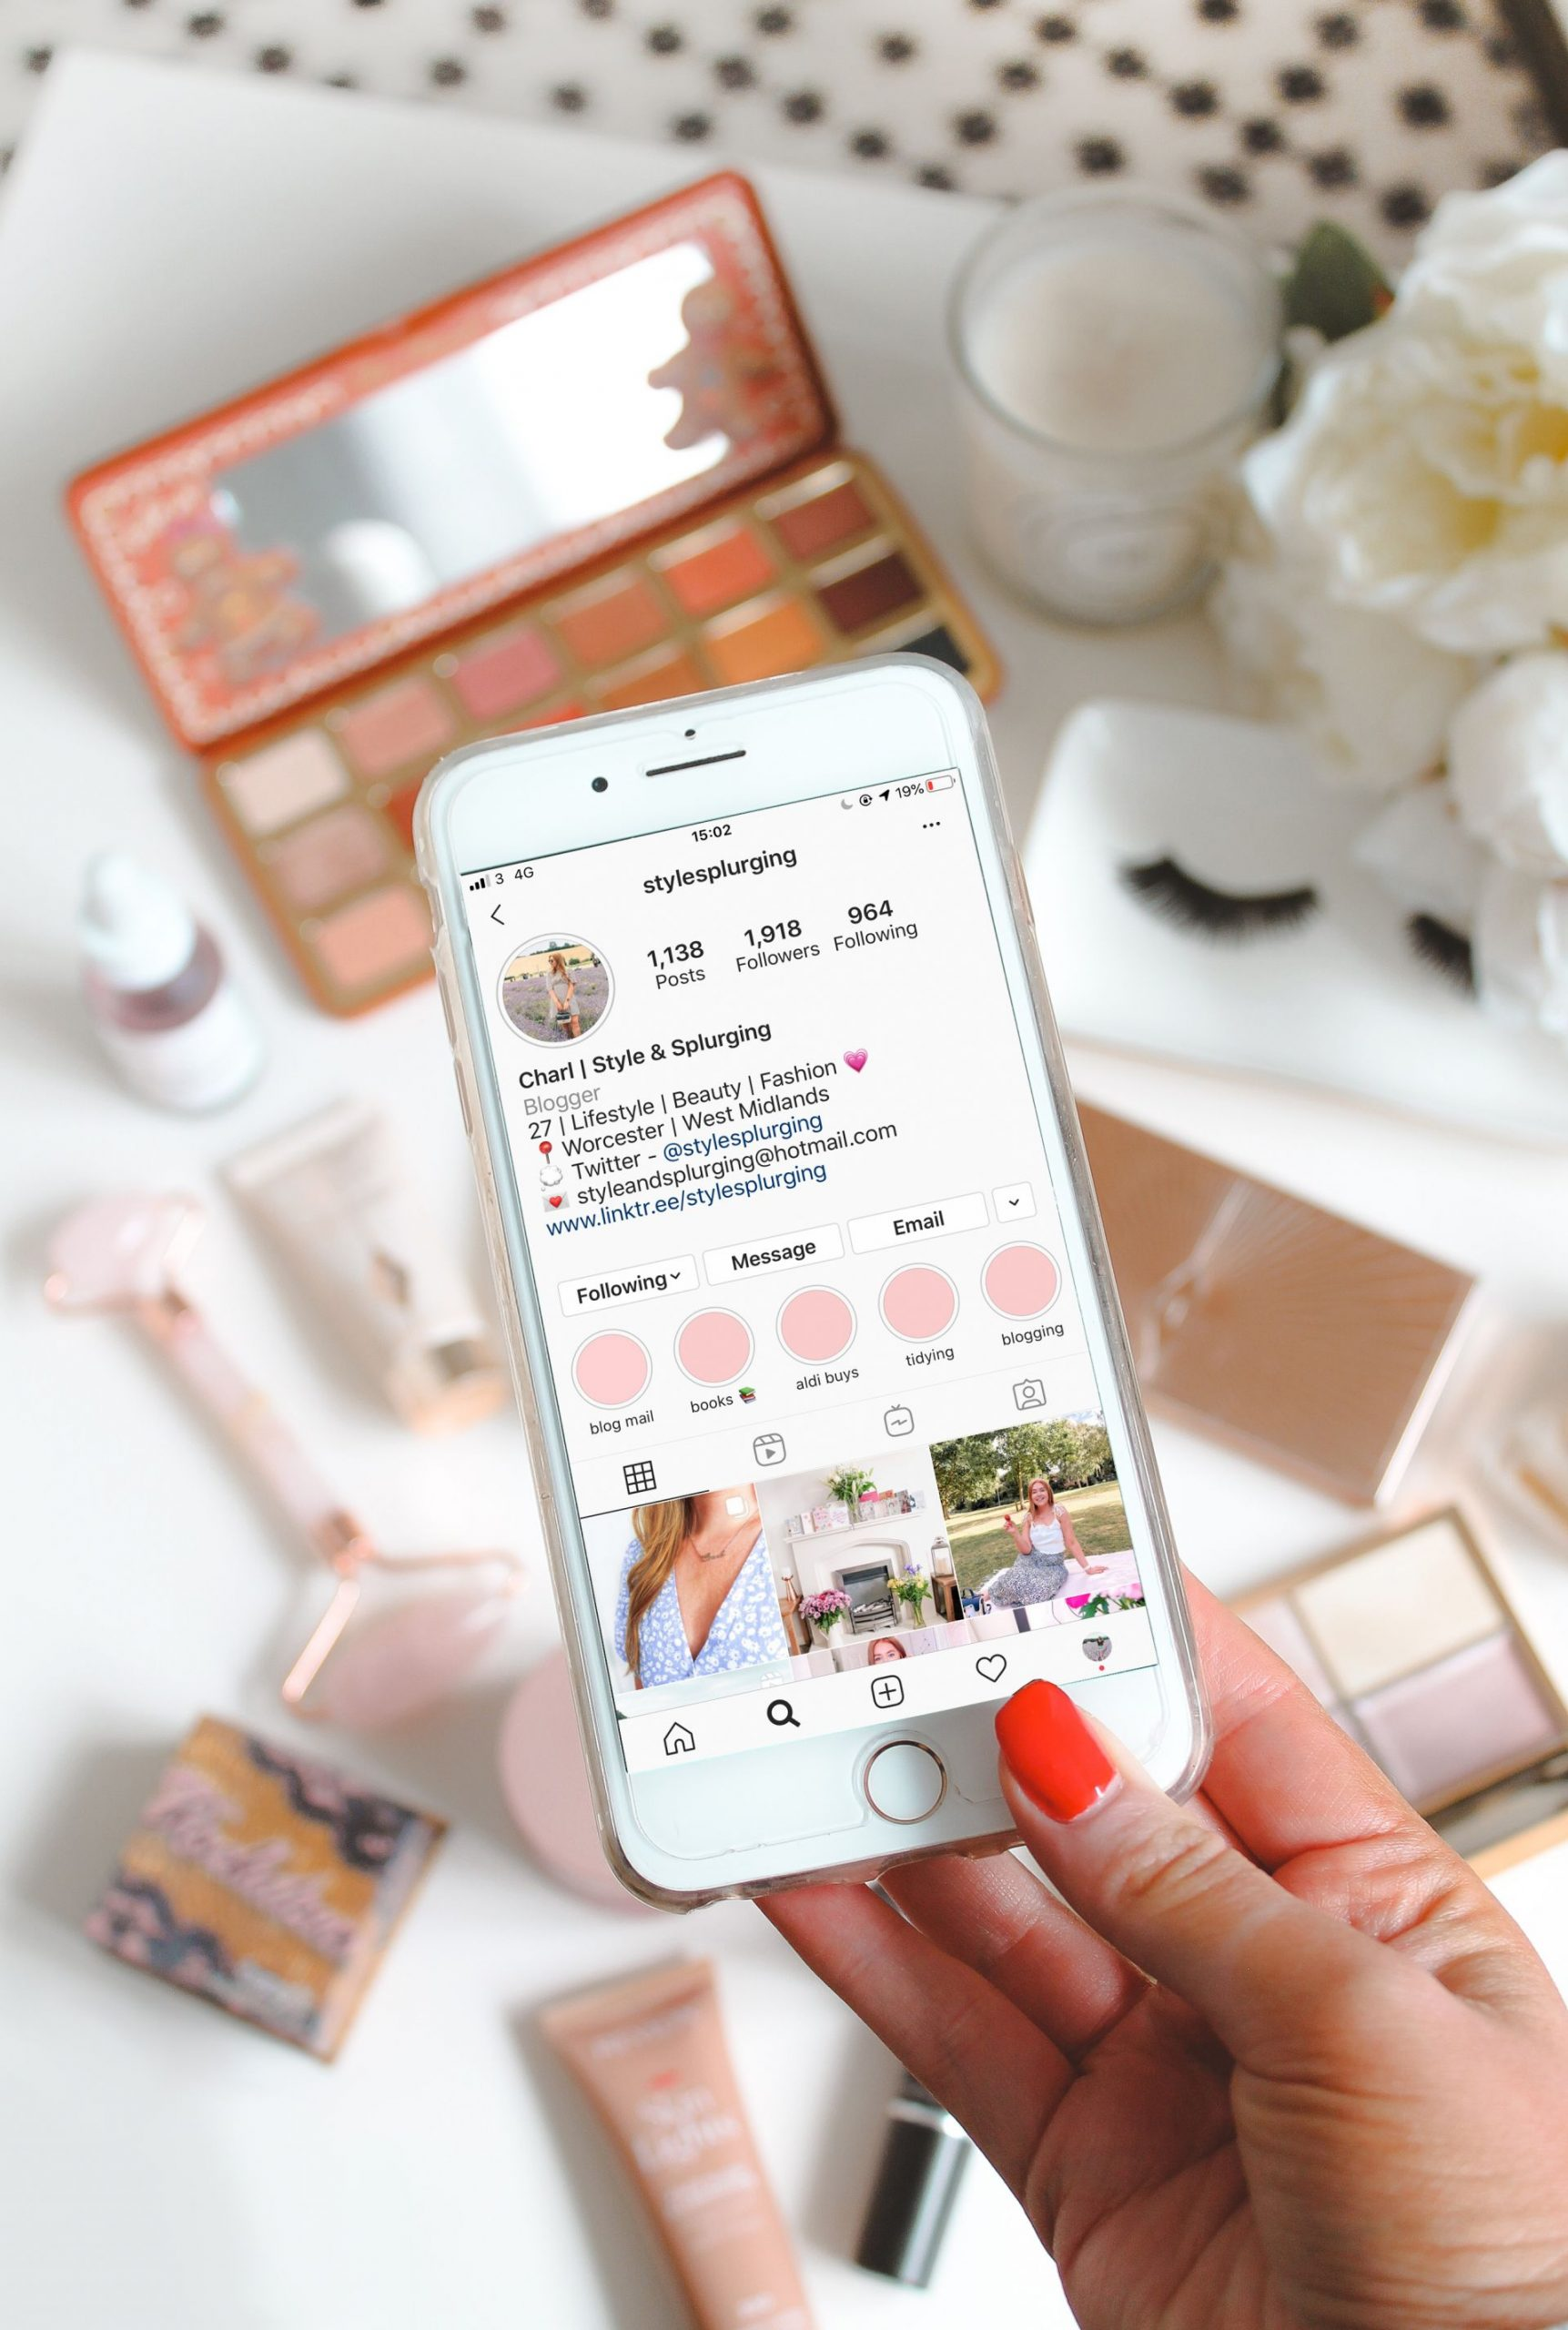 Ultimate Instagram Beauty Hashtags